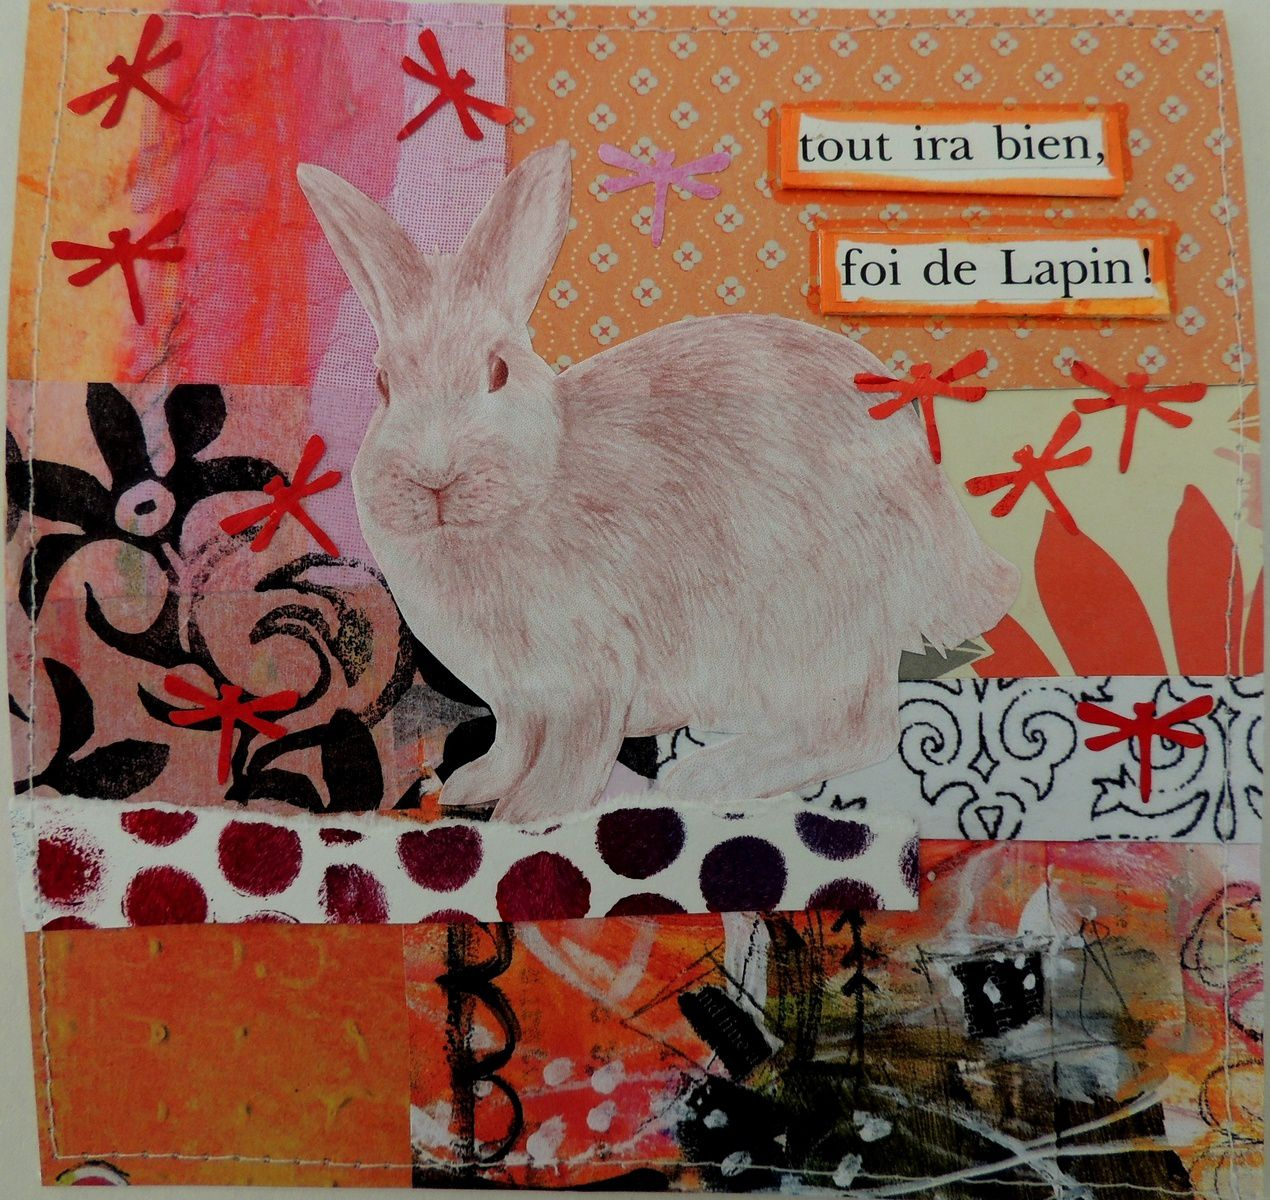 Pâques - Easter greetings